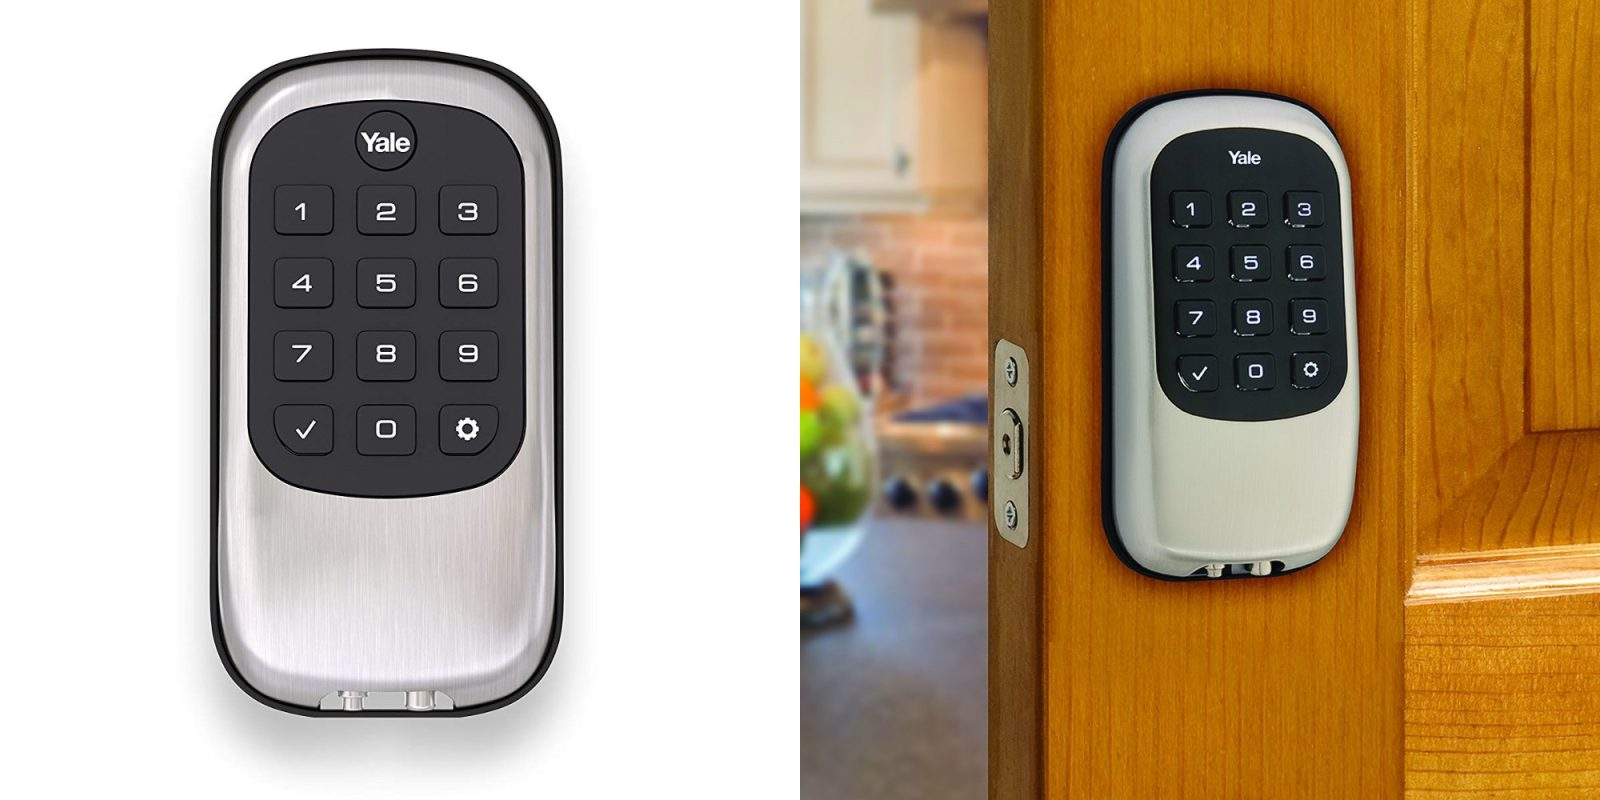 Ditch keys w/ Yale's Push Button Z-Wave Deadbolt: $78 (Save $20)